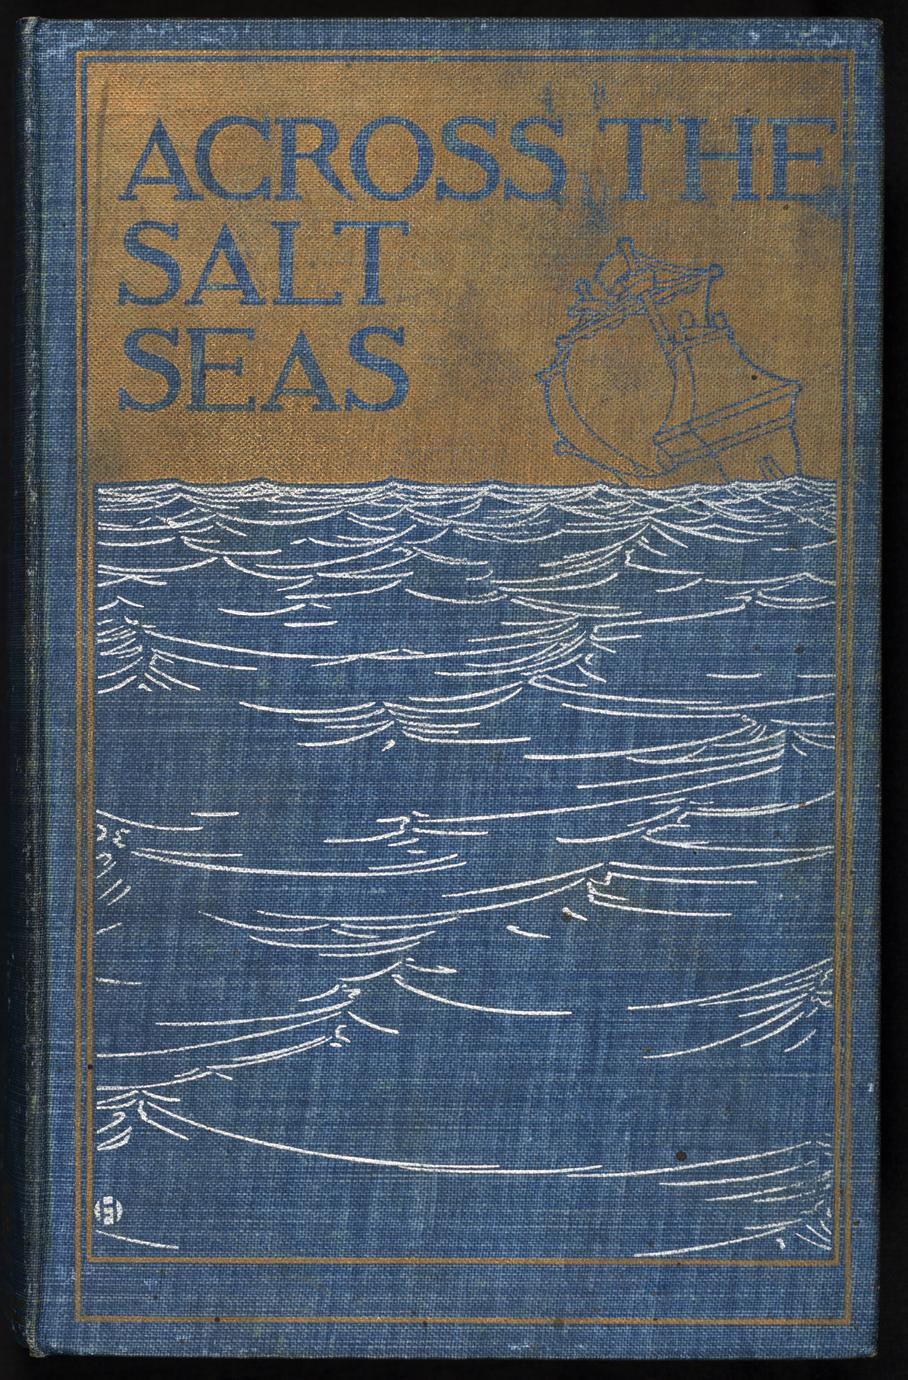 Across the salt seas : a romance of the war of succession (1 of 2)